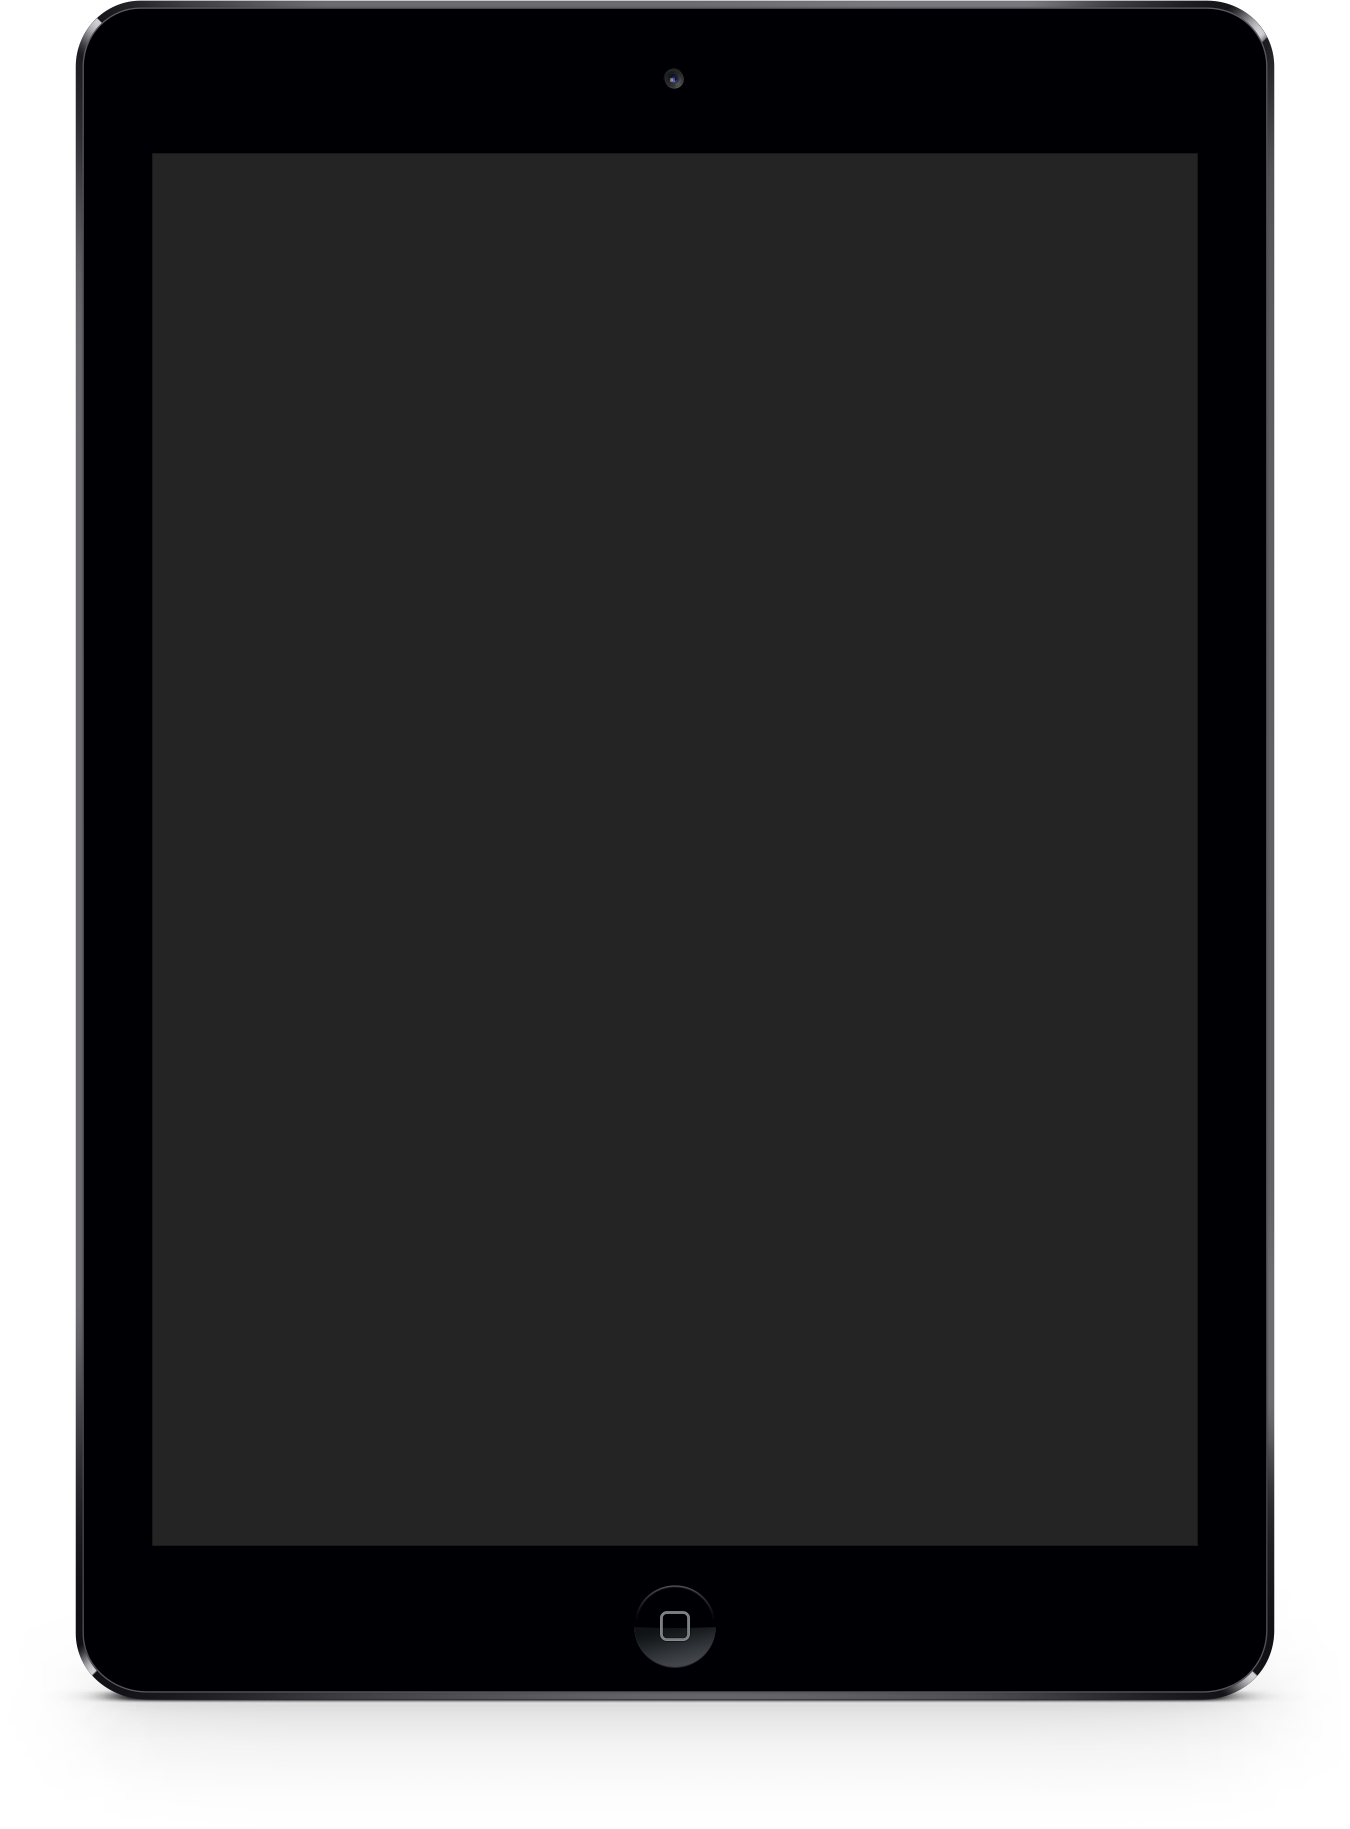 iPad device wrapper in vertical format.